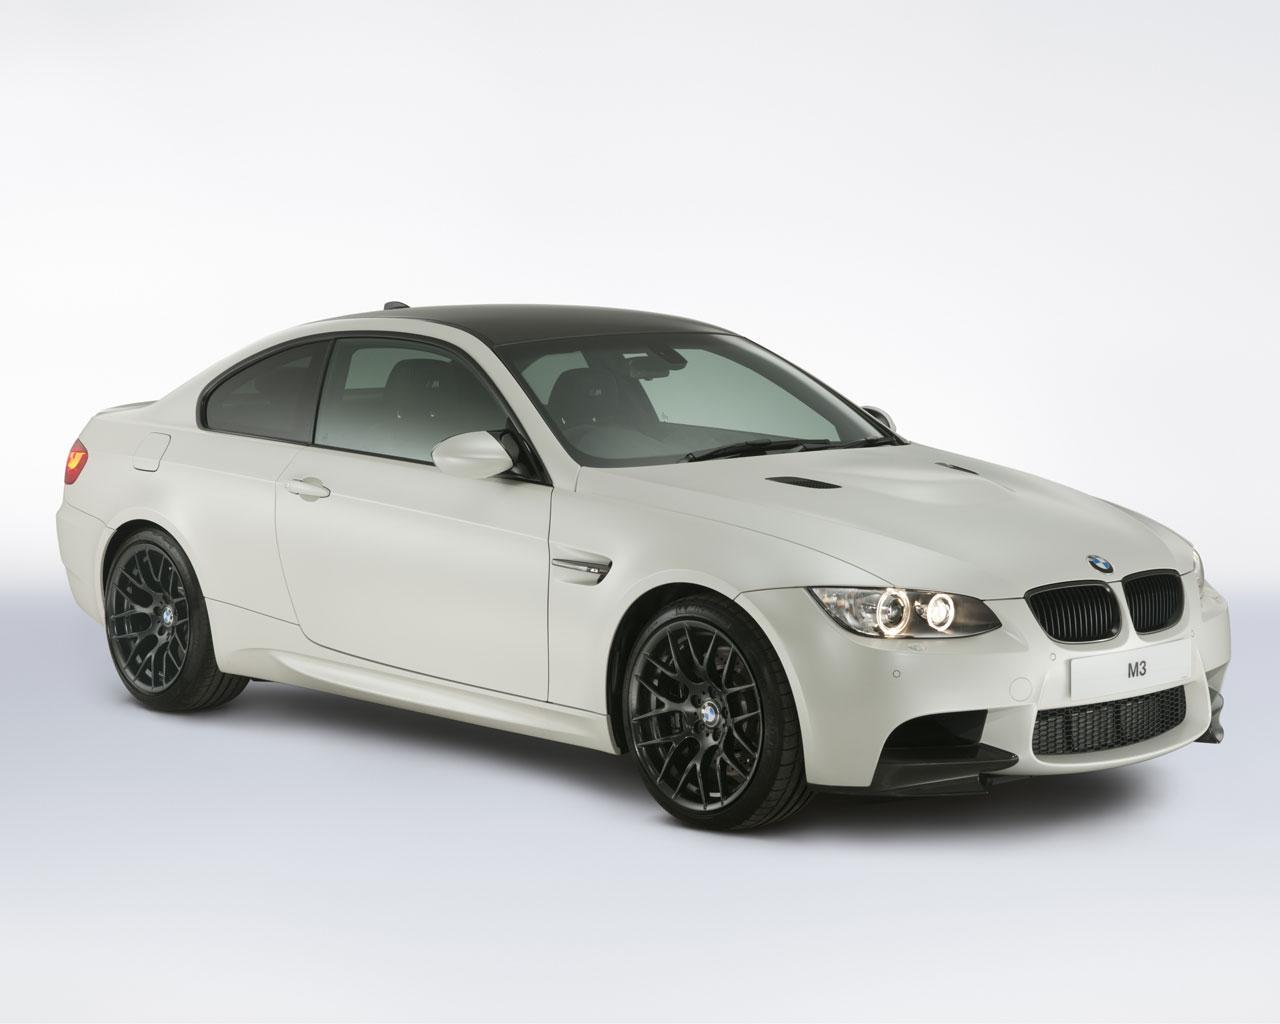 2012 Bmw M3 M Performance Edition Details And Pricing